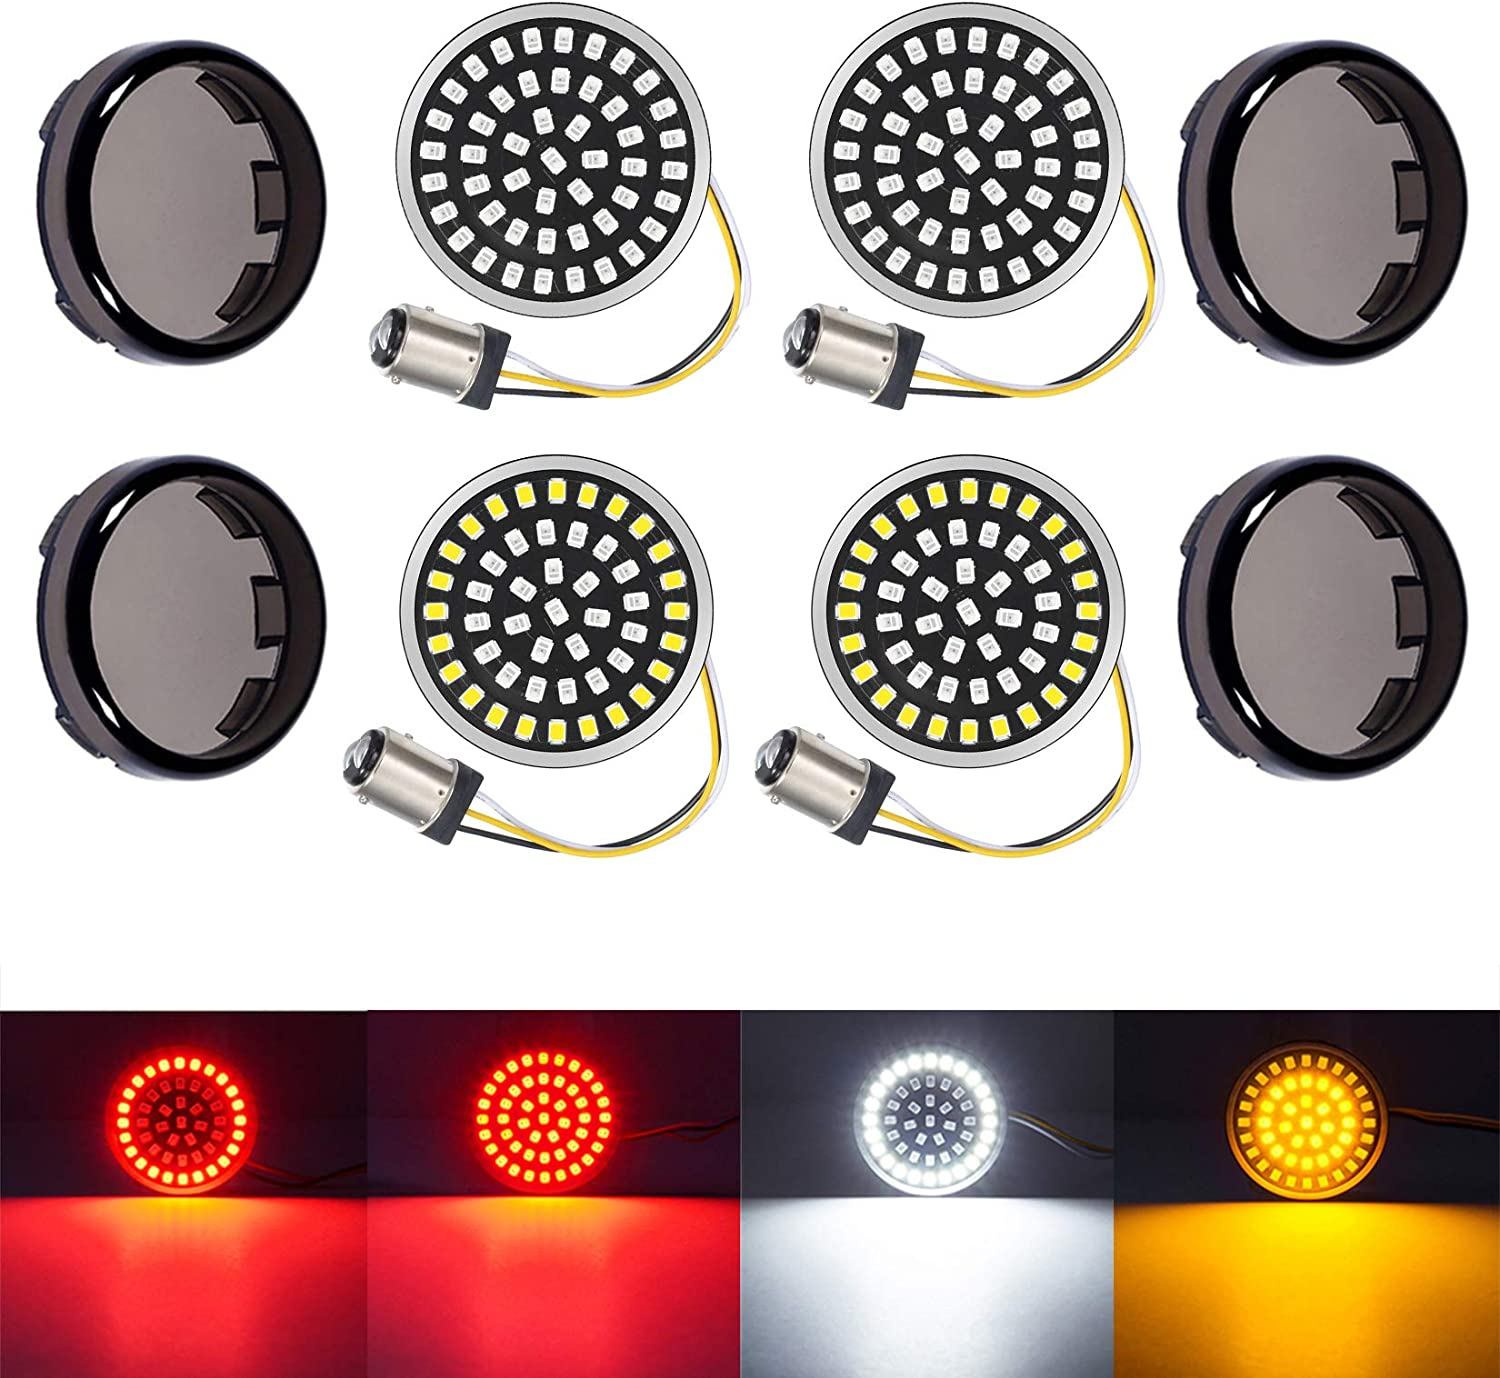 PBYMT 1157 Front Rear Turn Signal Light Smoke Max 56% OFF L LED Bulb Ranking TOP9 SMD Kit